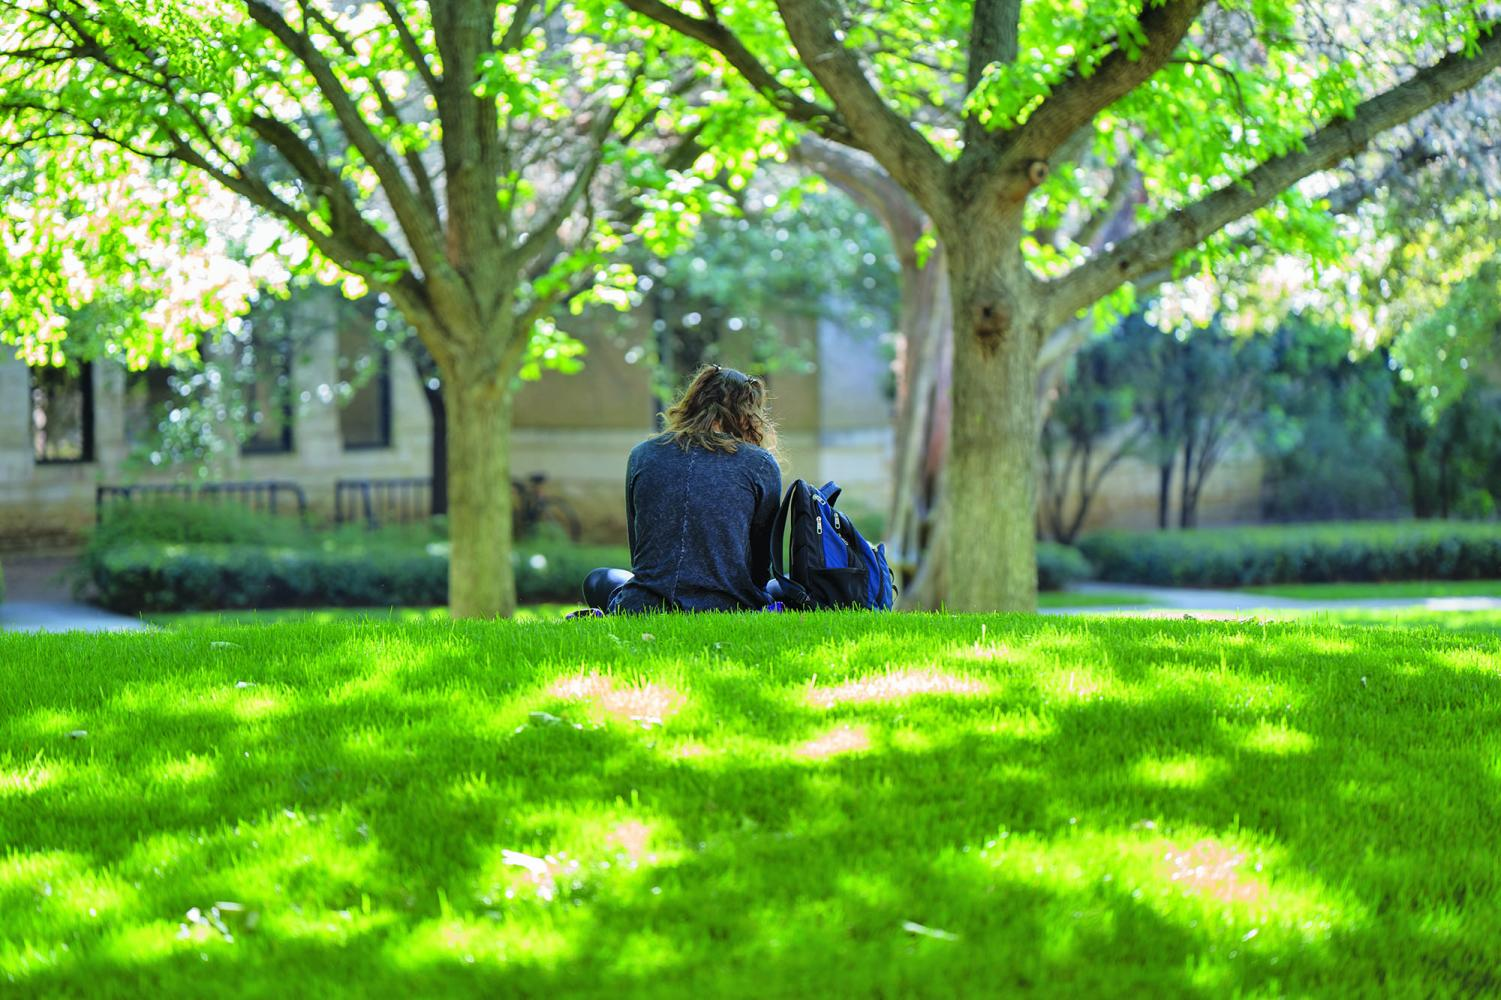 Students search for mental health resources on campus. More than 25 percent of college students have been diagnosed with a mental illness, according to the National Alliance on Mental Illness.